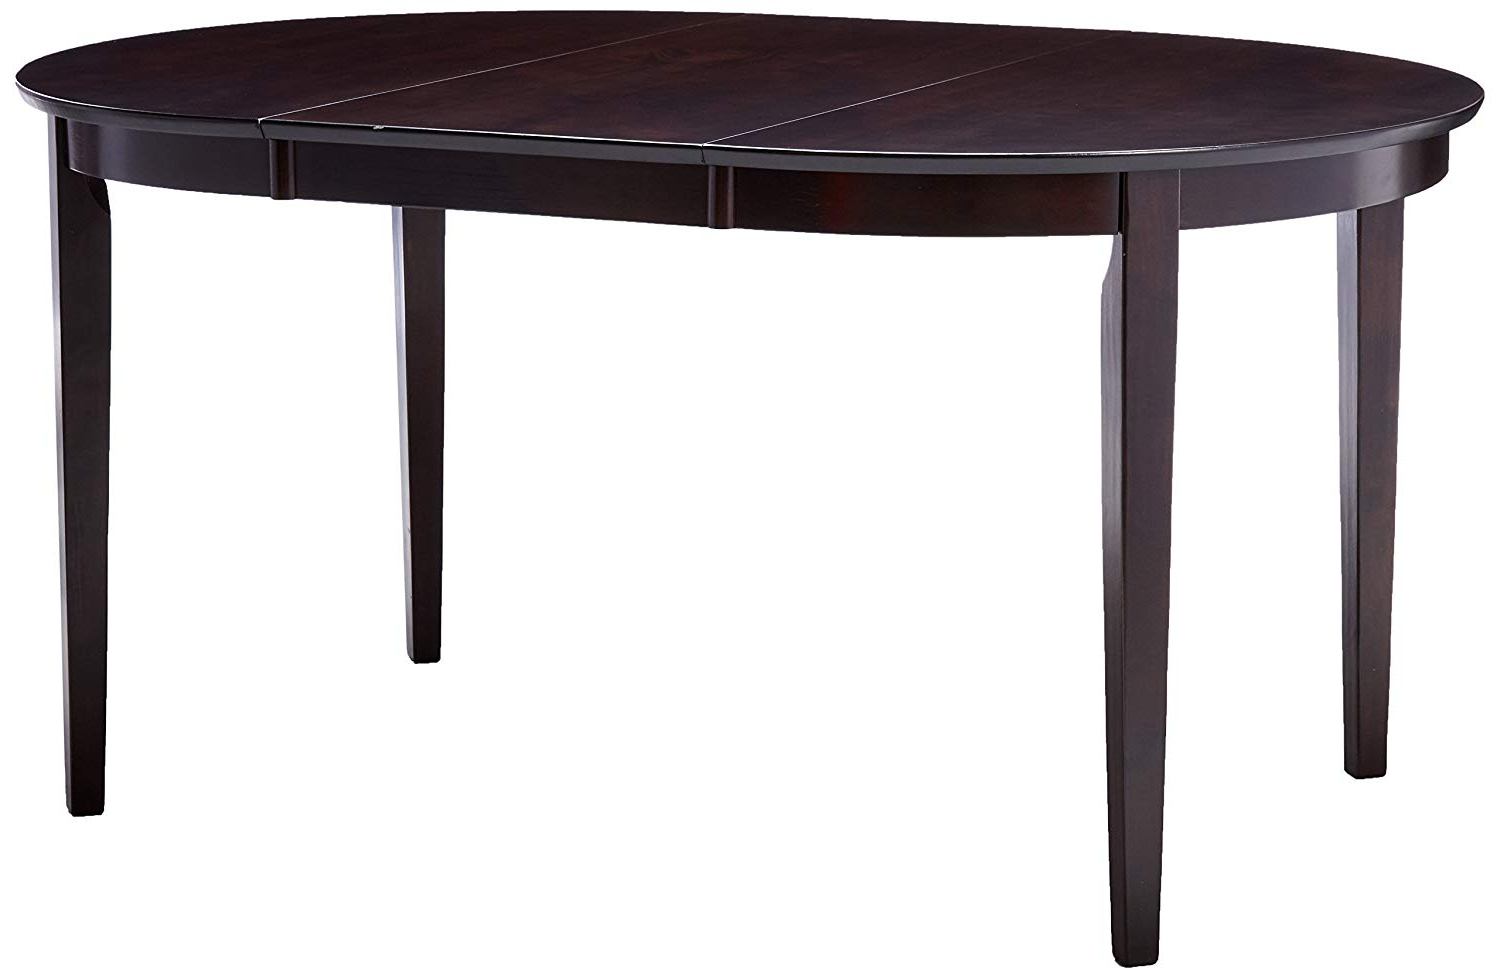 Cappuccino Finish Wood Classic Casual Dining Tables With Regard To Favorite Coaster 100770 Oval Dining Table With Extension Leaf Cappuccino Finish (View 10 of 25)